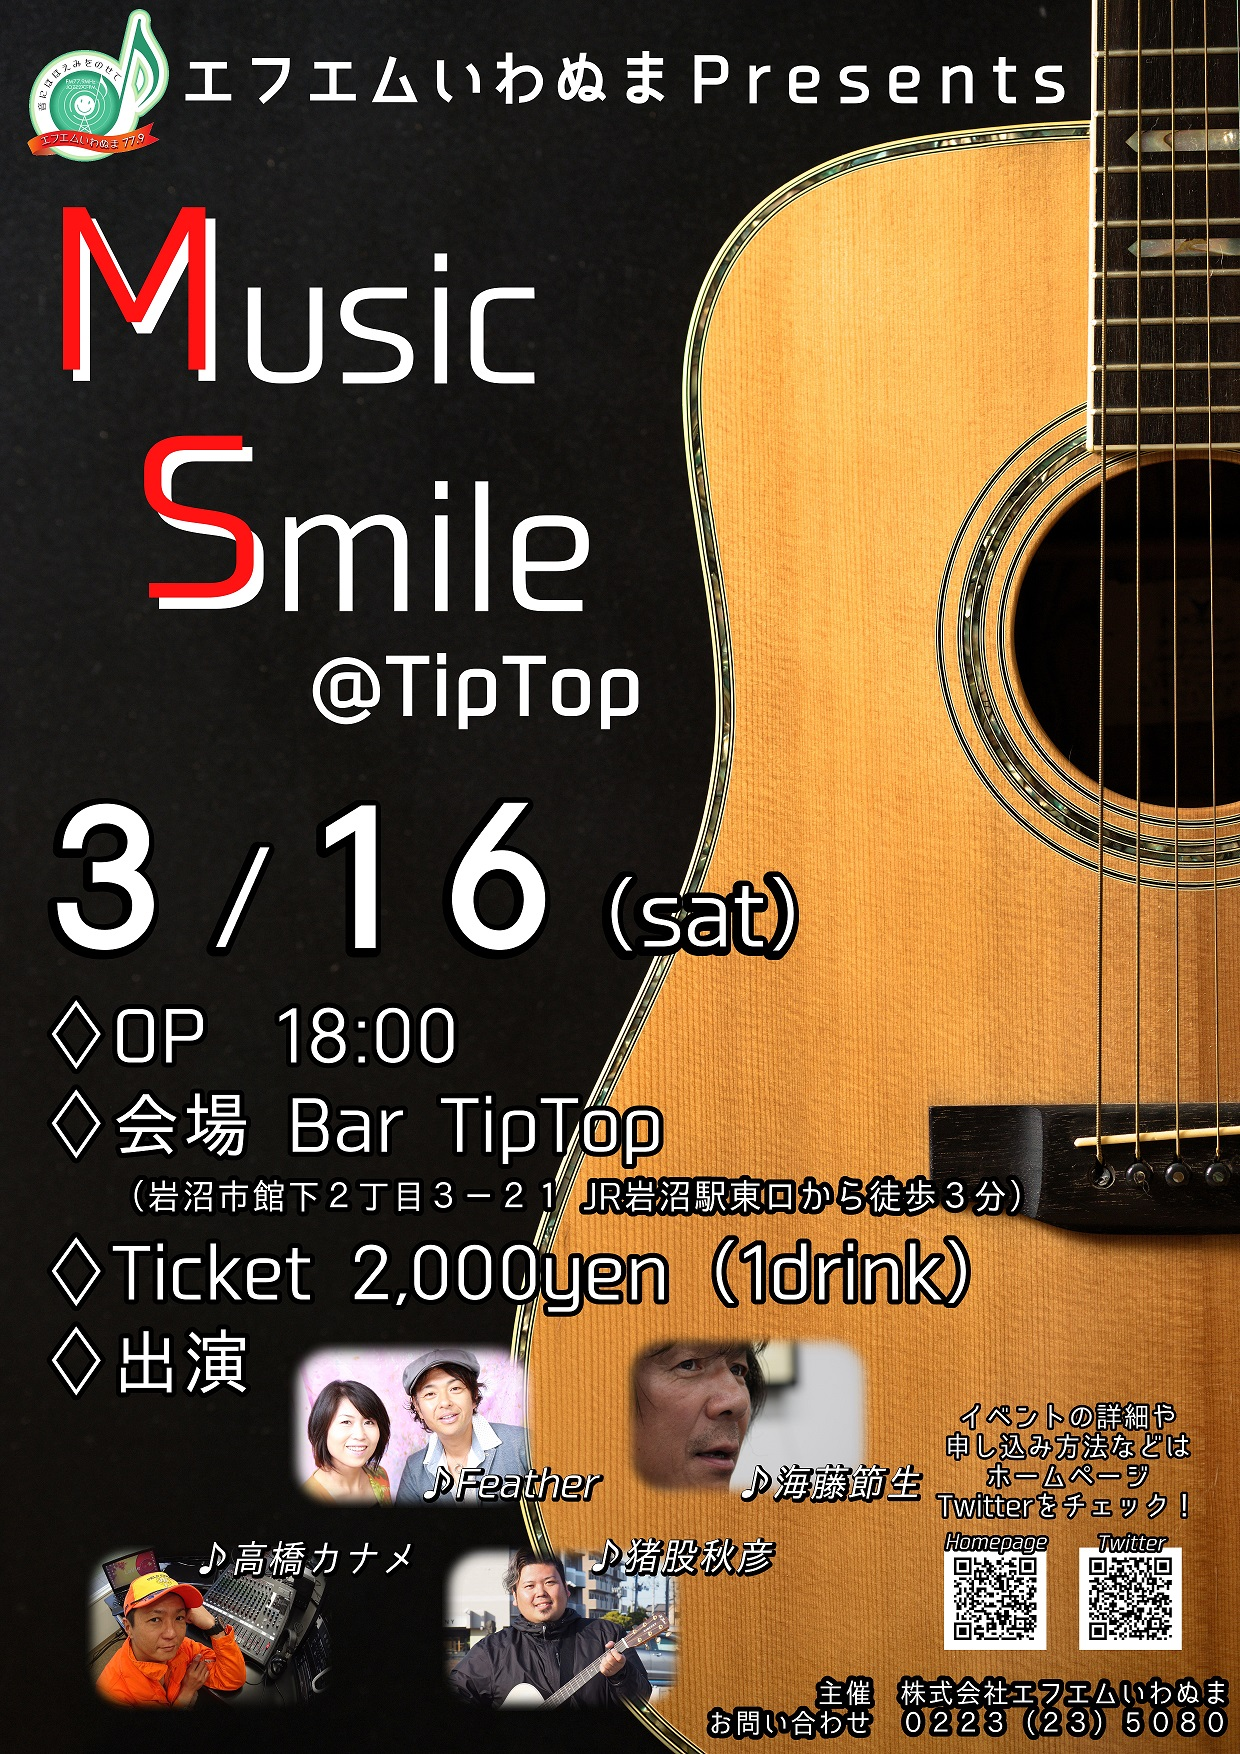 エフエムいわぬま Presents 【Music Smile @ Tip Top】